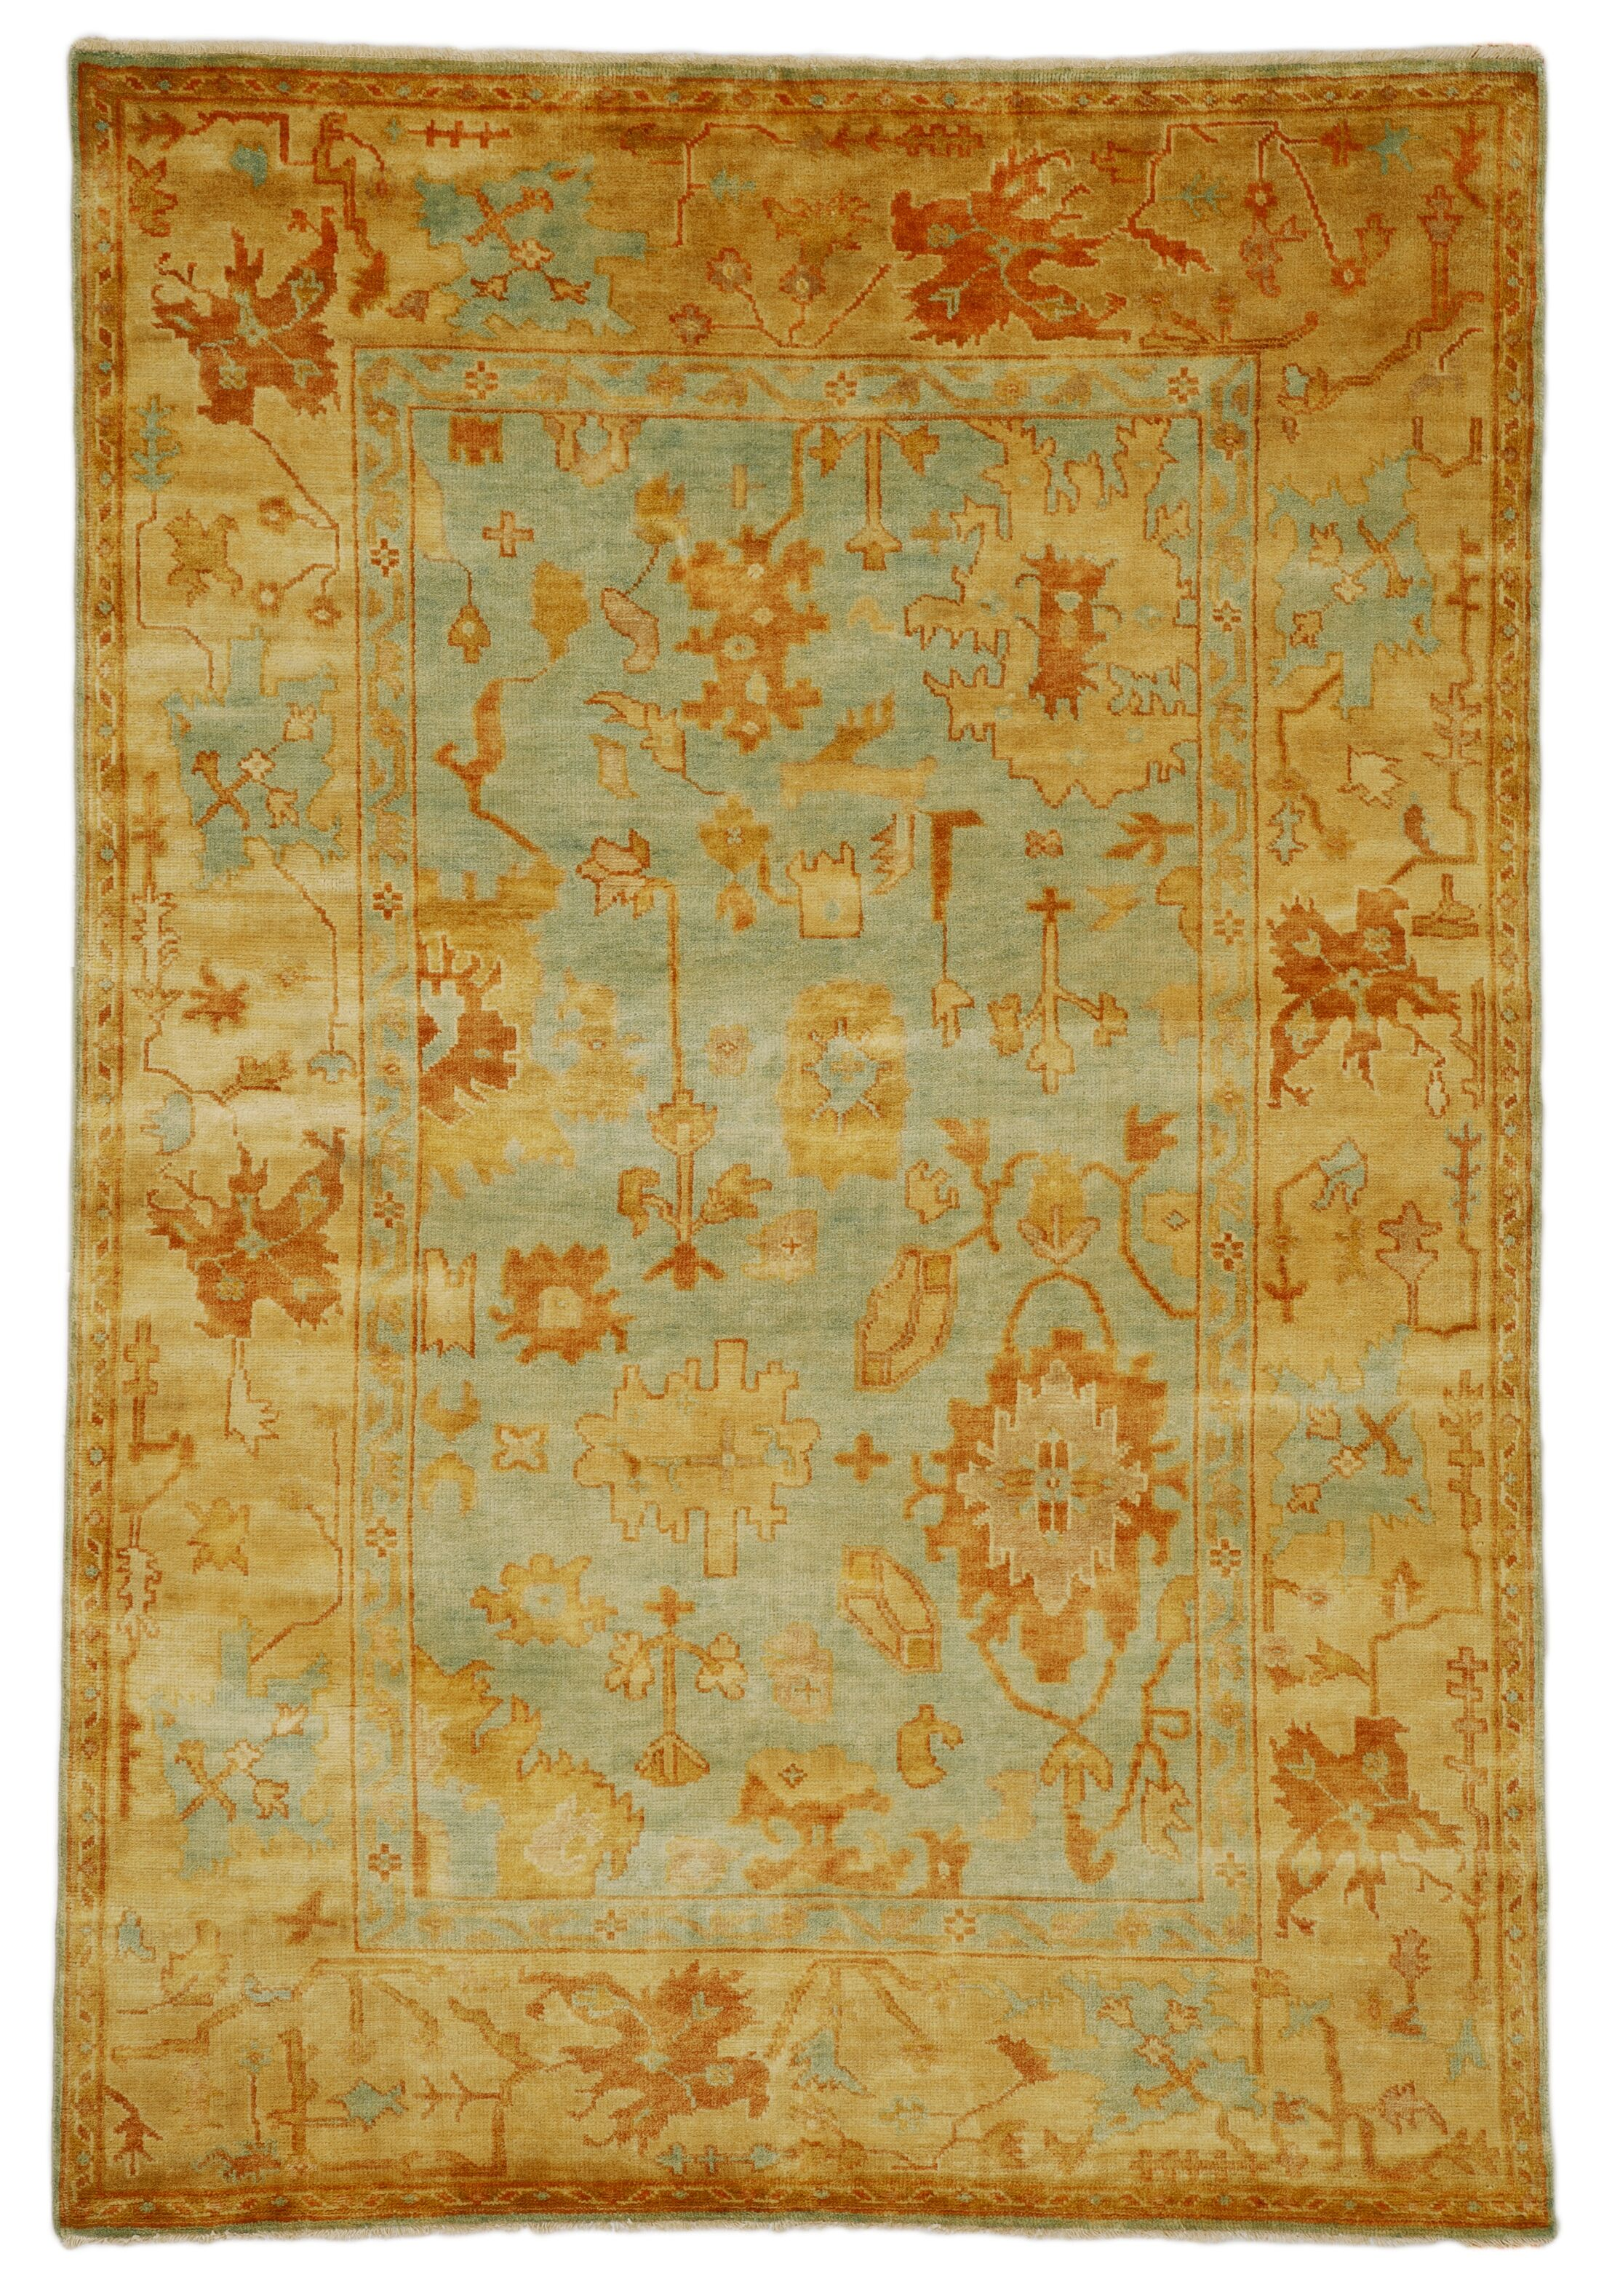 Oushak Hand-Knotted Wool Dark Blue/Beige Area Rug Rug Size: 8' x 10'